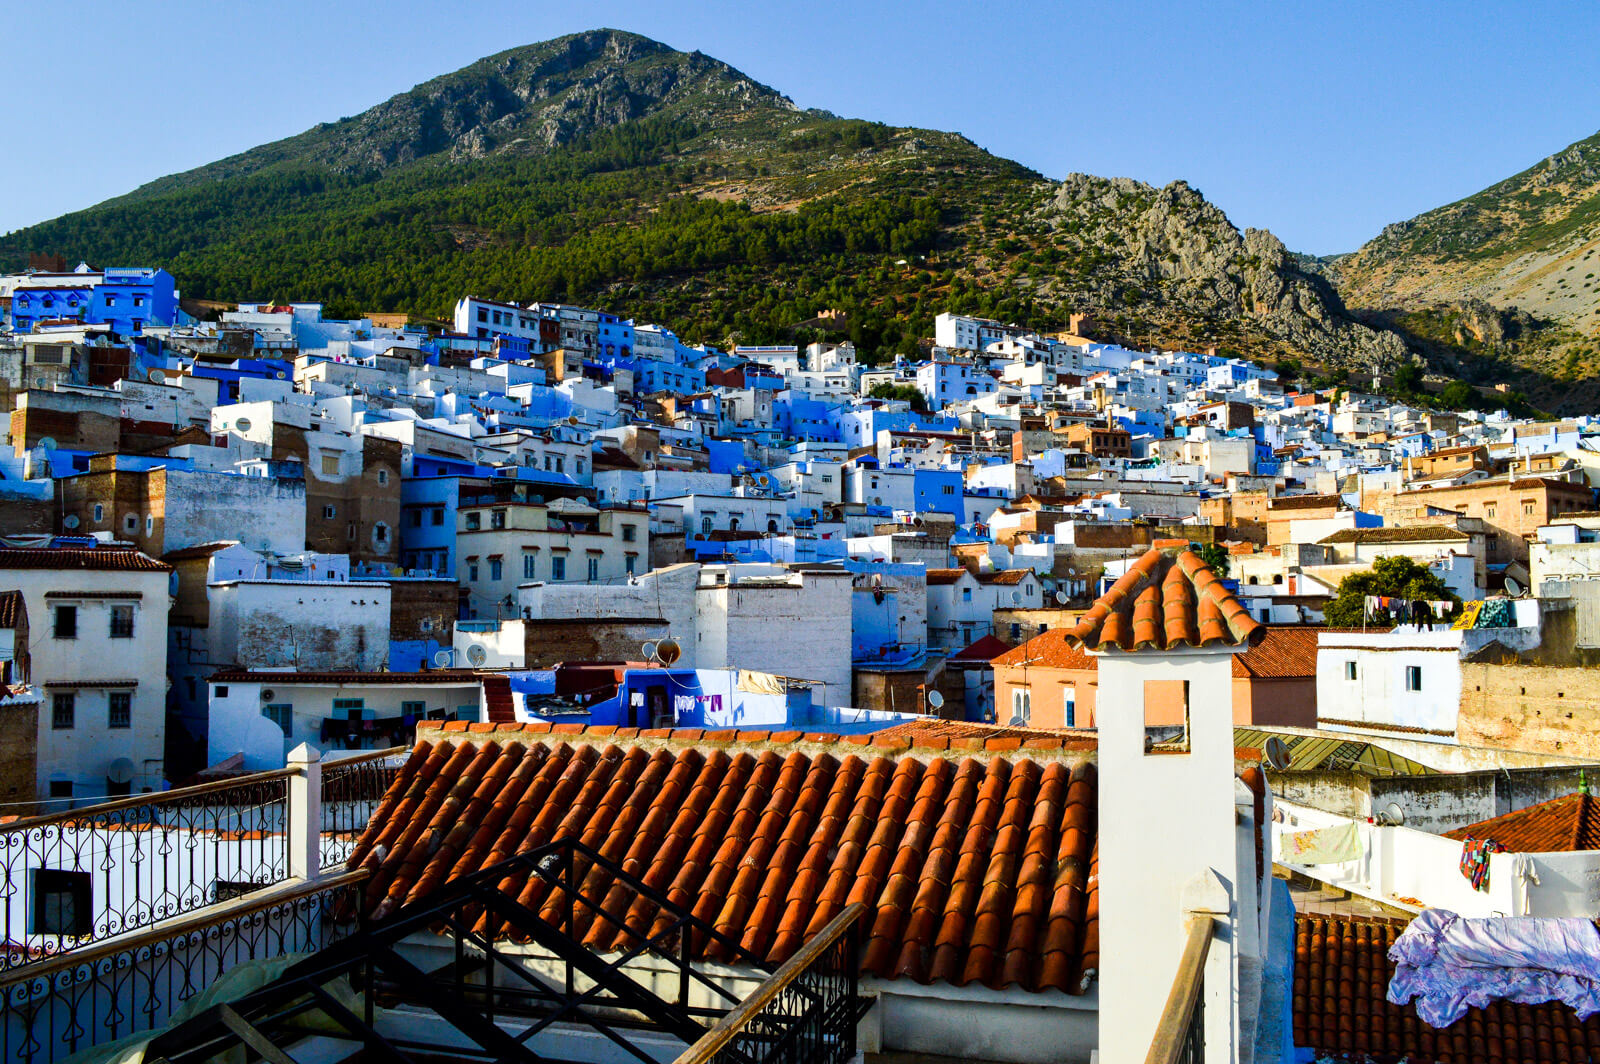 The Best Things to Do and See in Chefchaouen